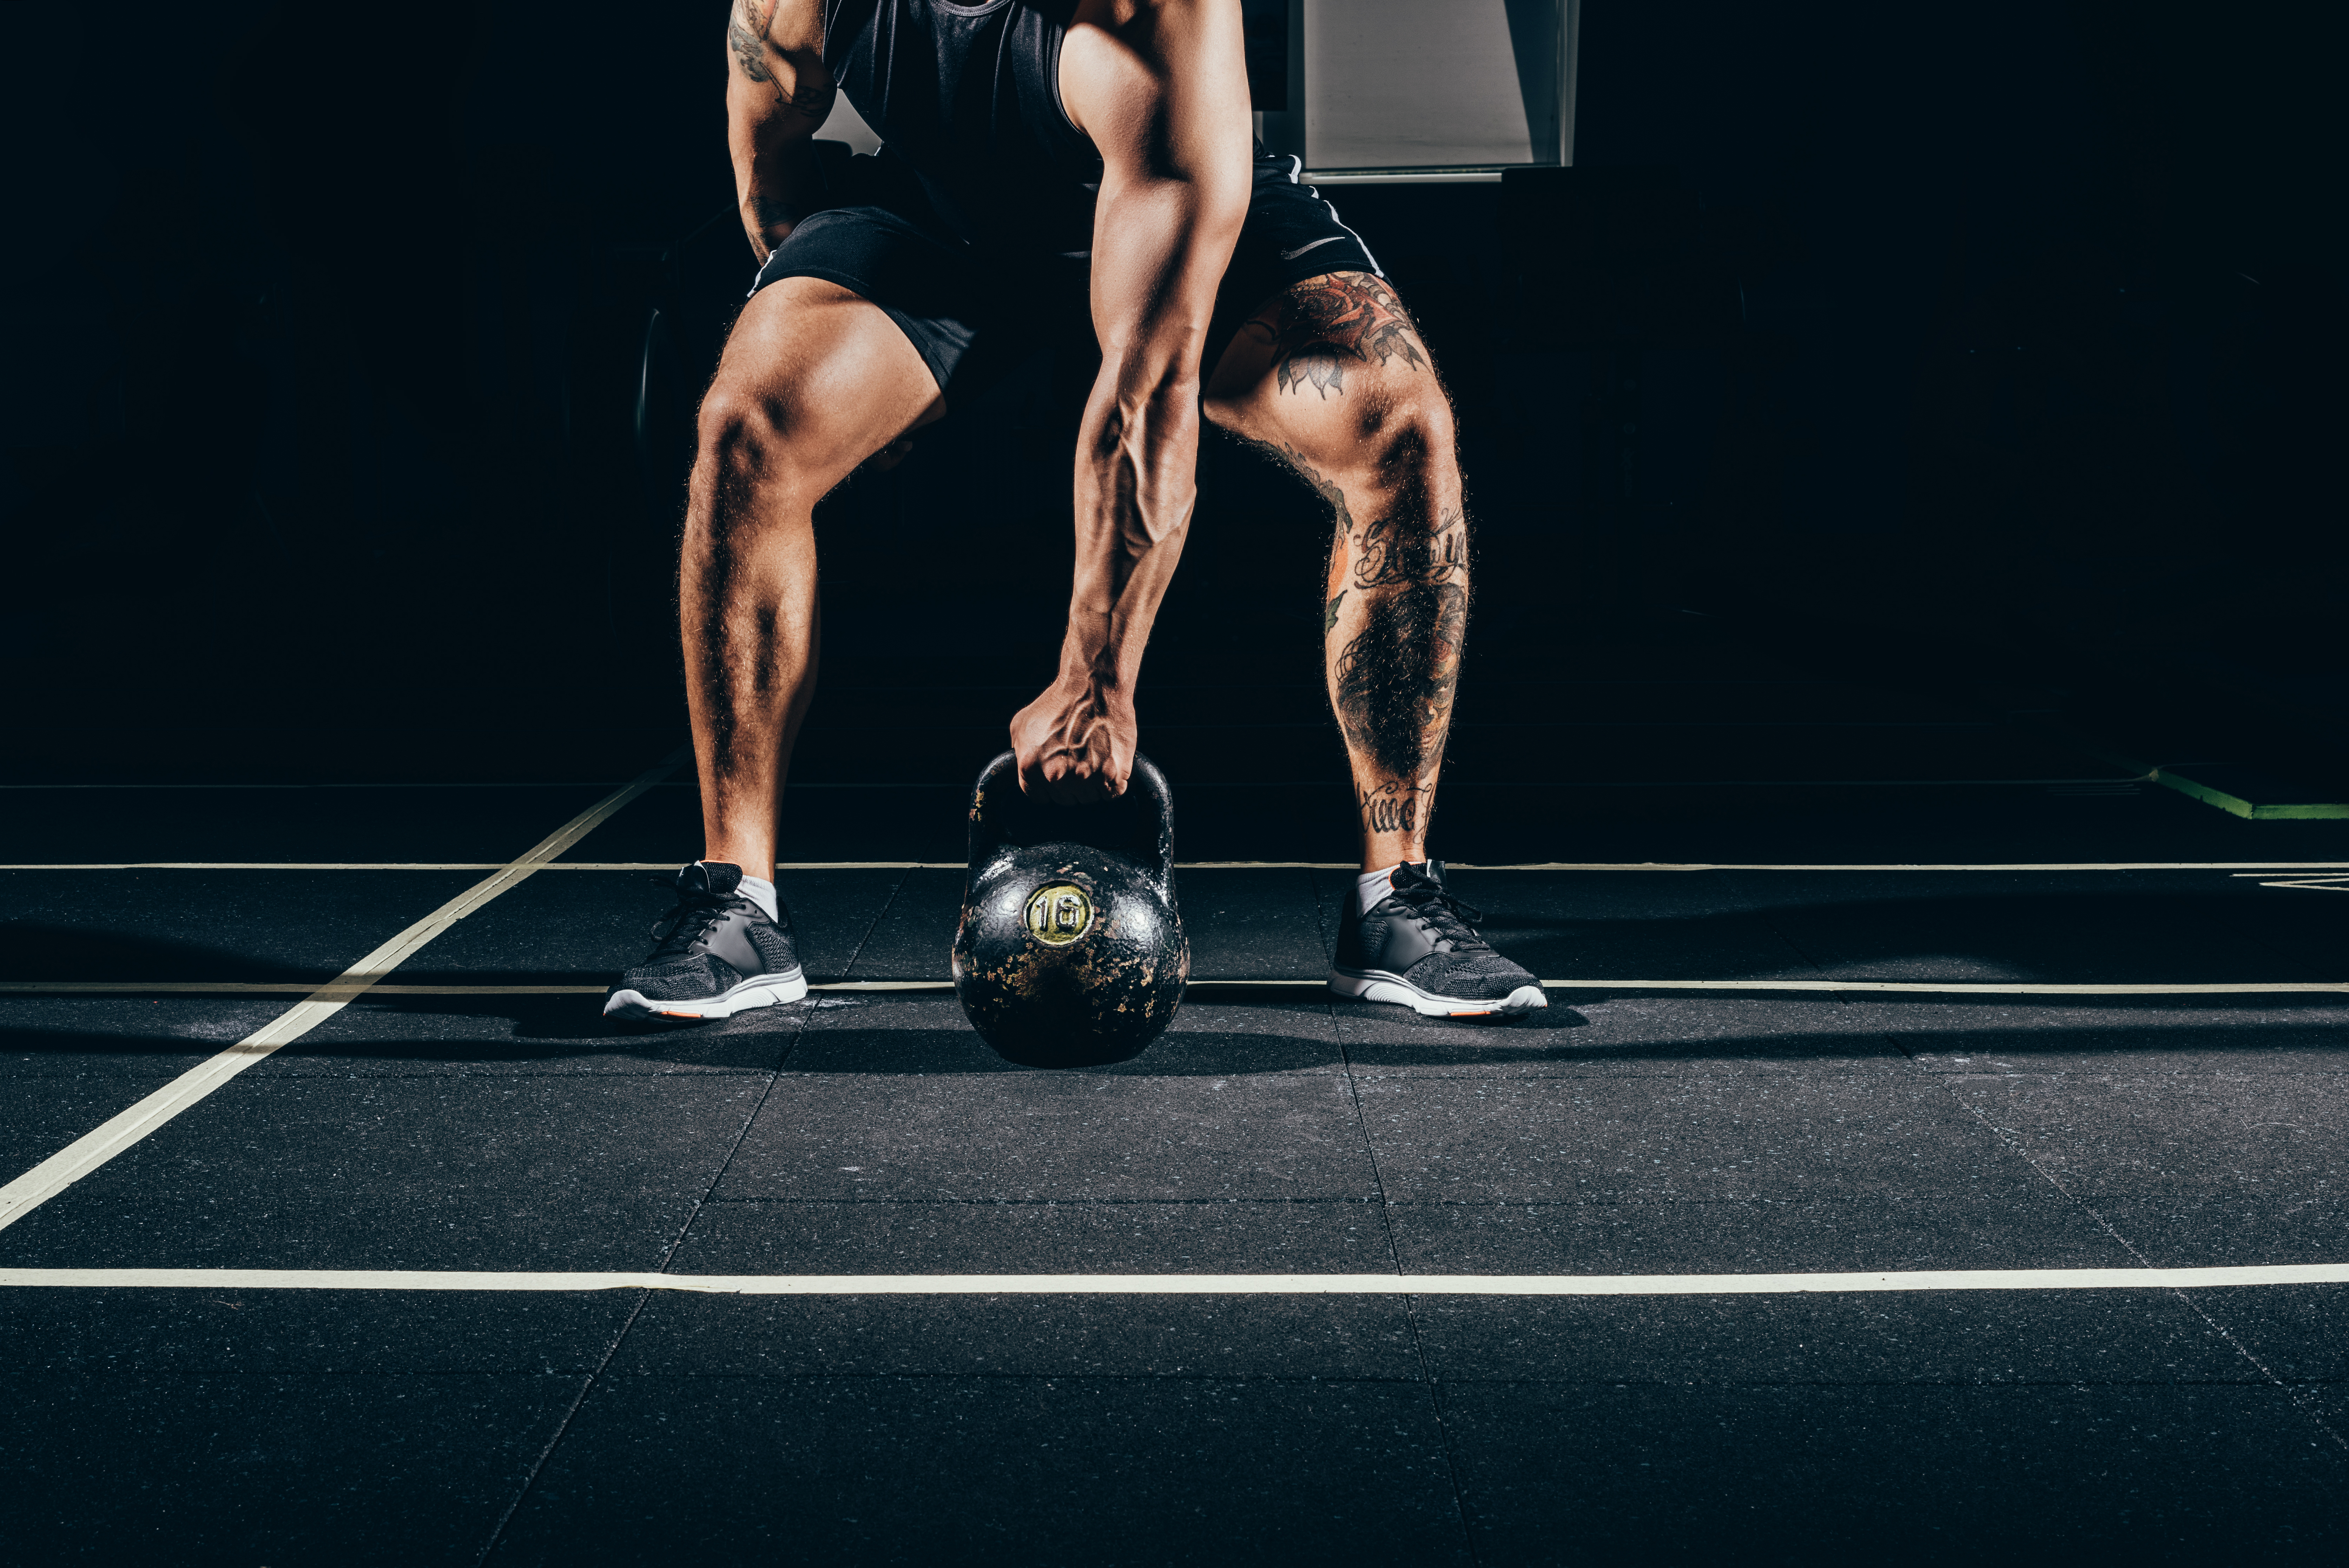 Interval Training Better At Promoting Weight Loss Than Cycling And Running